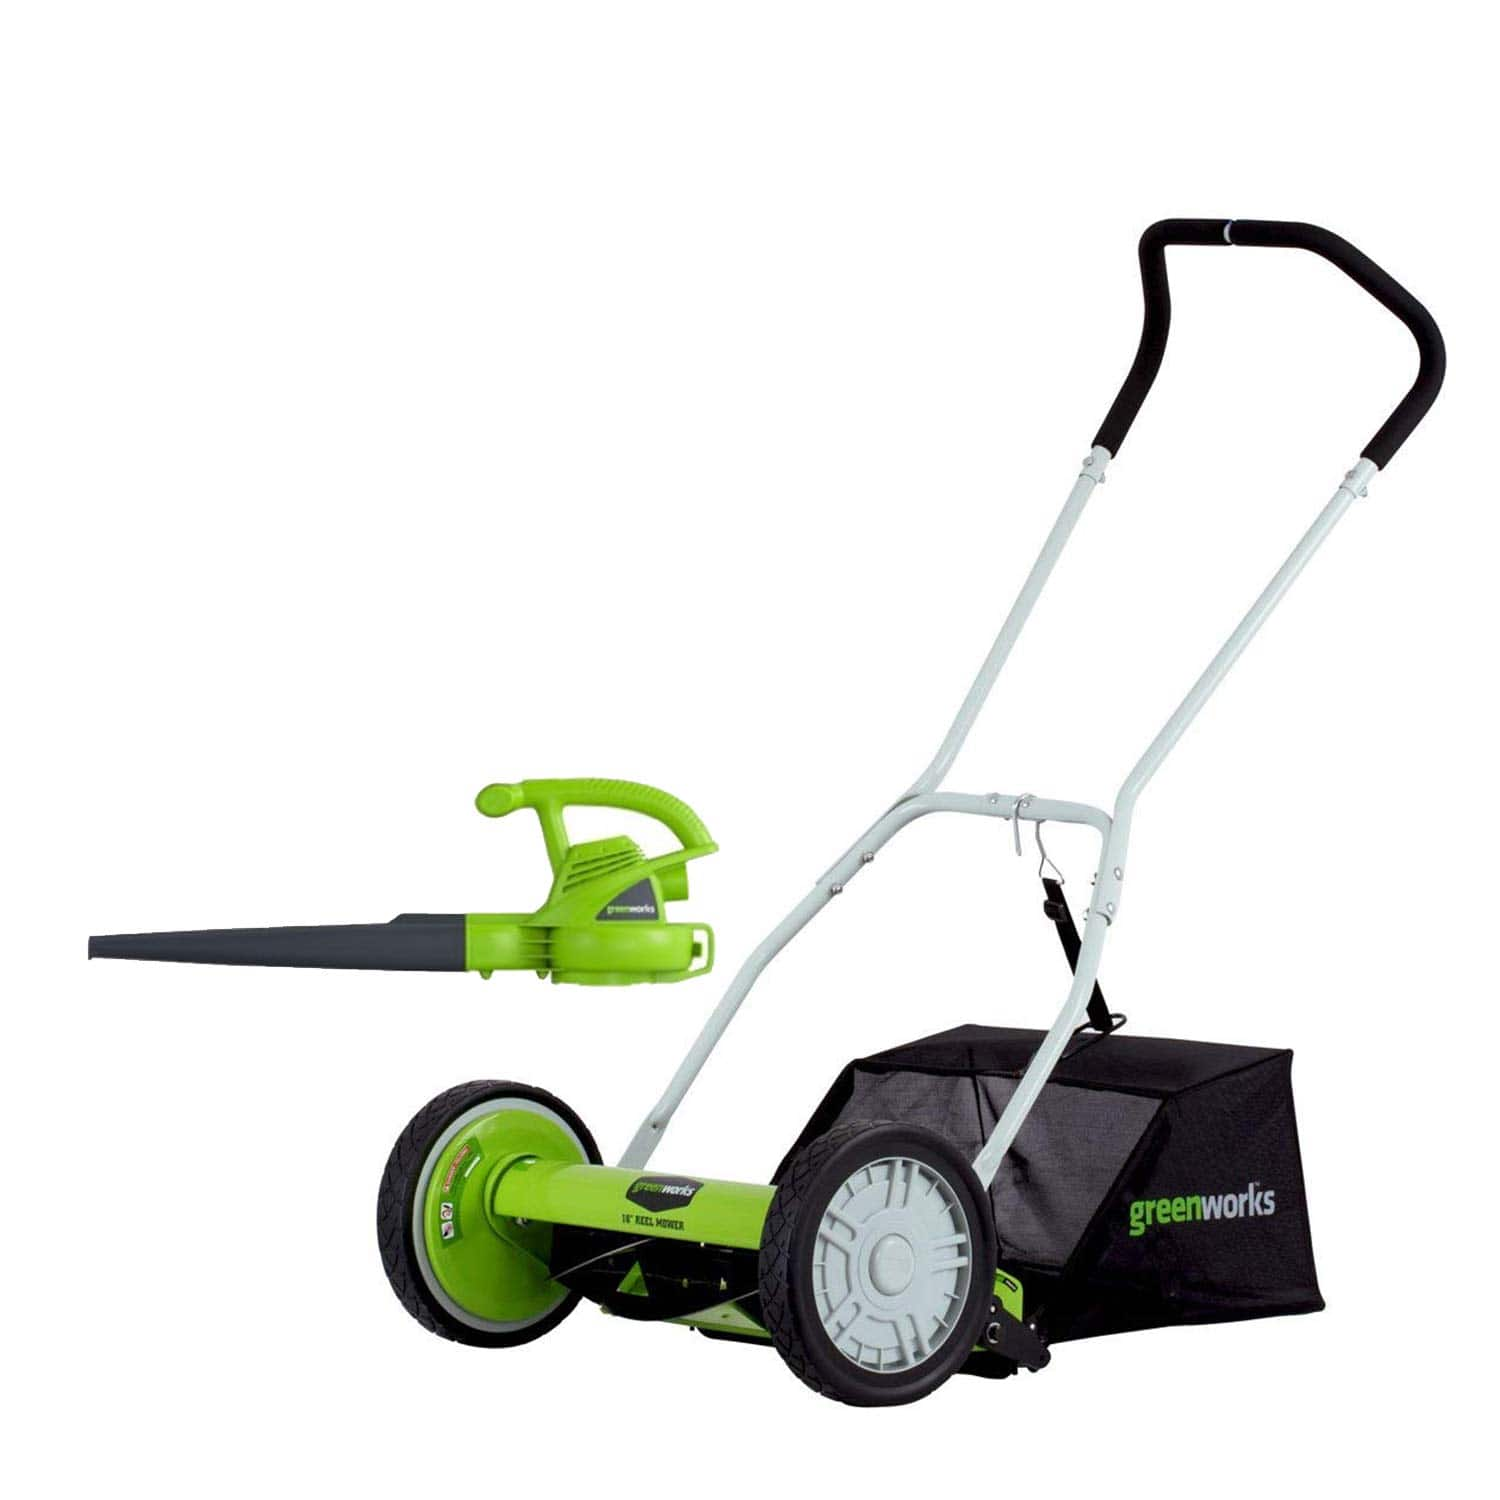 Amazon Warehouse - GreenWorks 16-Inch Reel Lawn Mower with Grass Catcher 25052+ 7 AMP Blower 24012 - Used acceptable - from $54.98